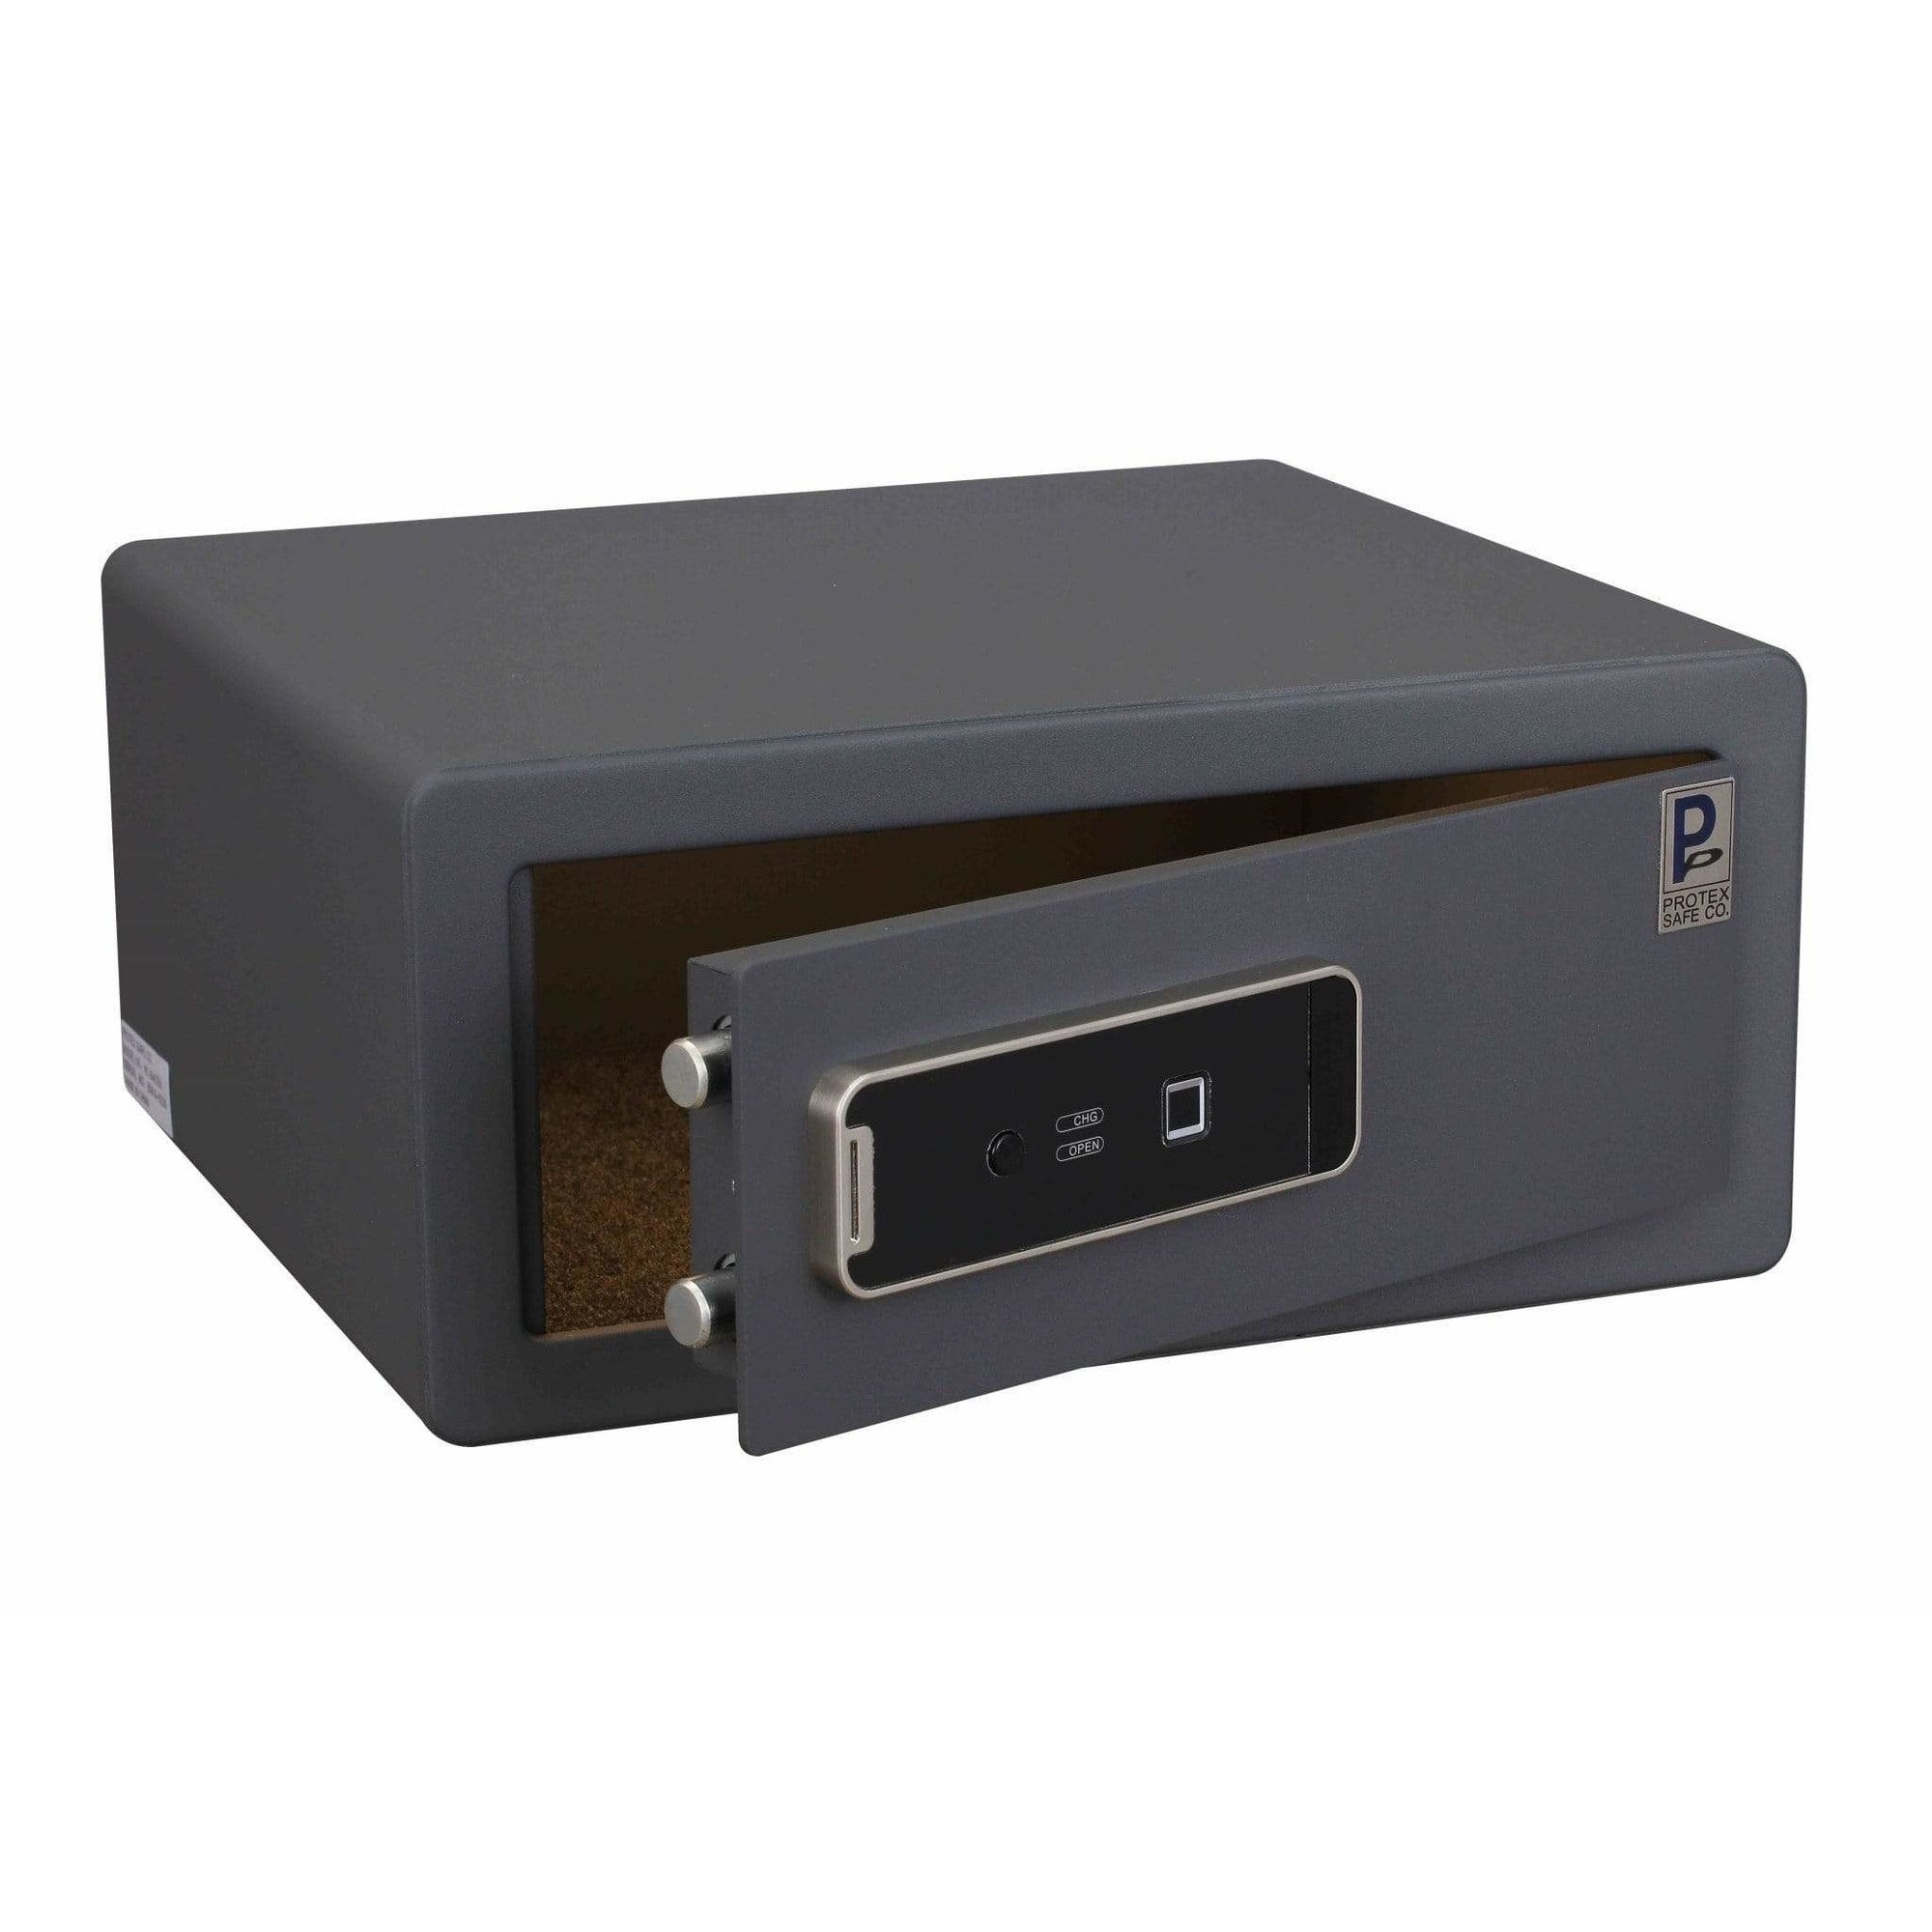 Protex Safes Hotel Safe Protex Hotel, Personal and Home Safe - H1-2043 ZH H1-2043 ZH